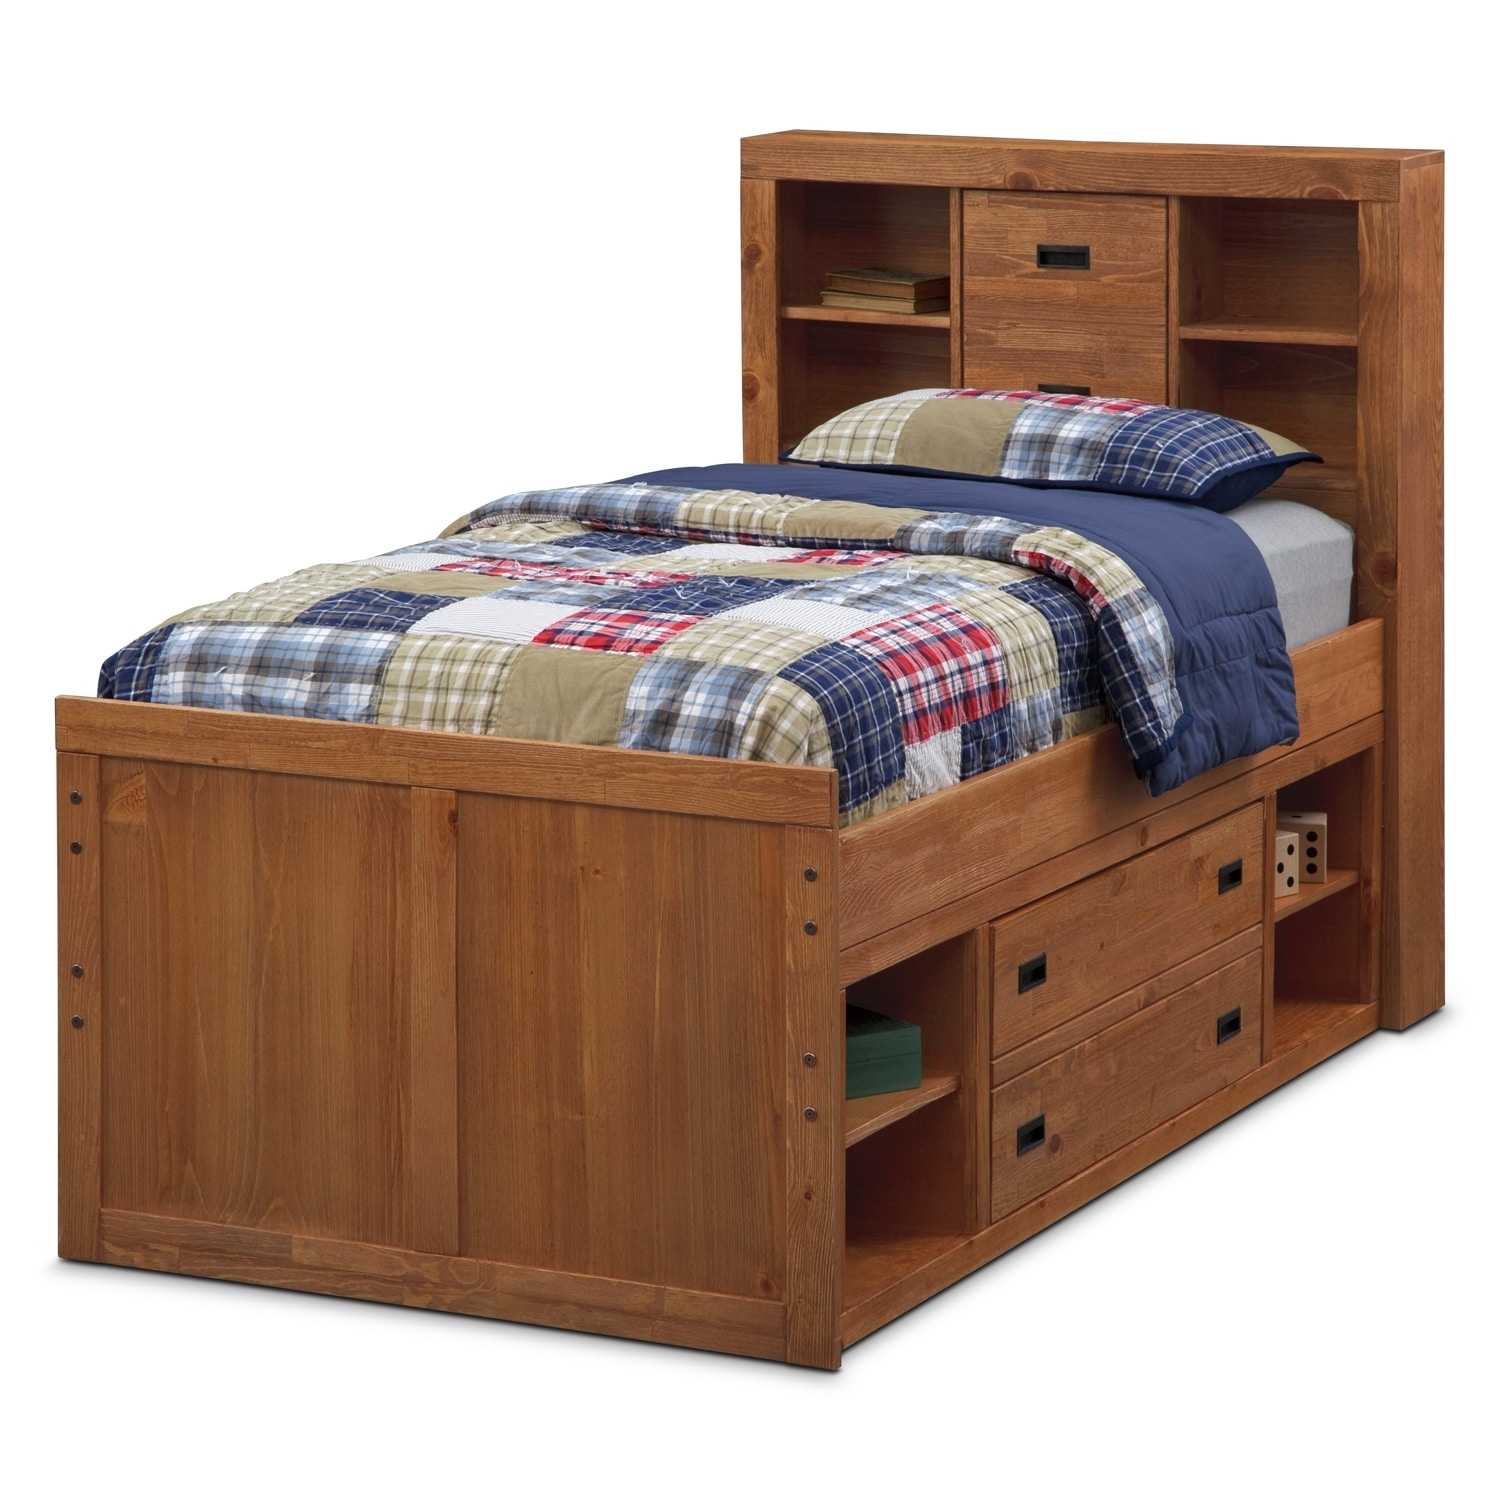 Captain twin bed for Captains bed